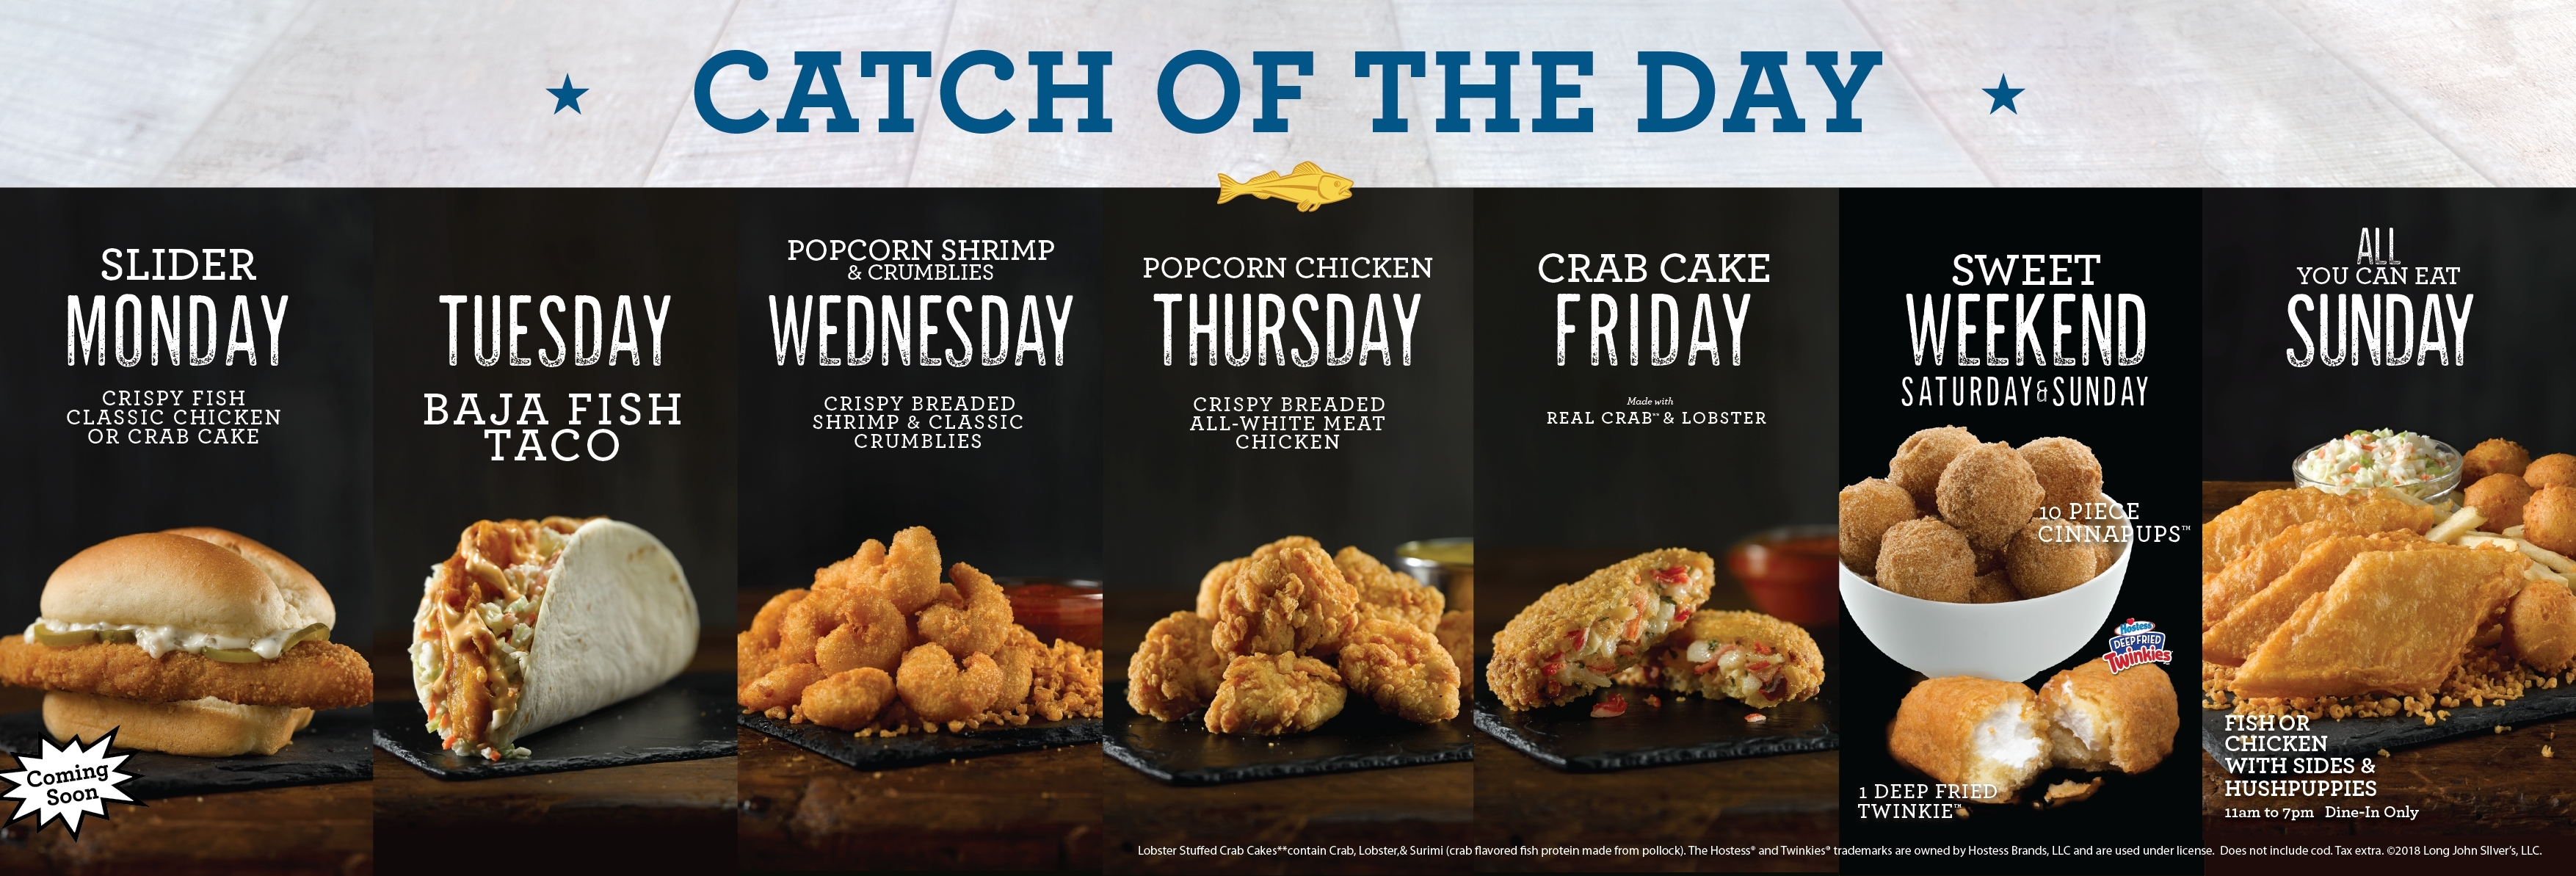 Long John Silver S Invites Guests To Catch A Daily 1 Deal